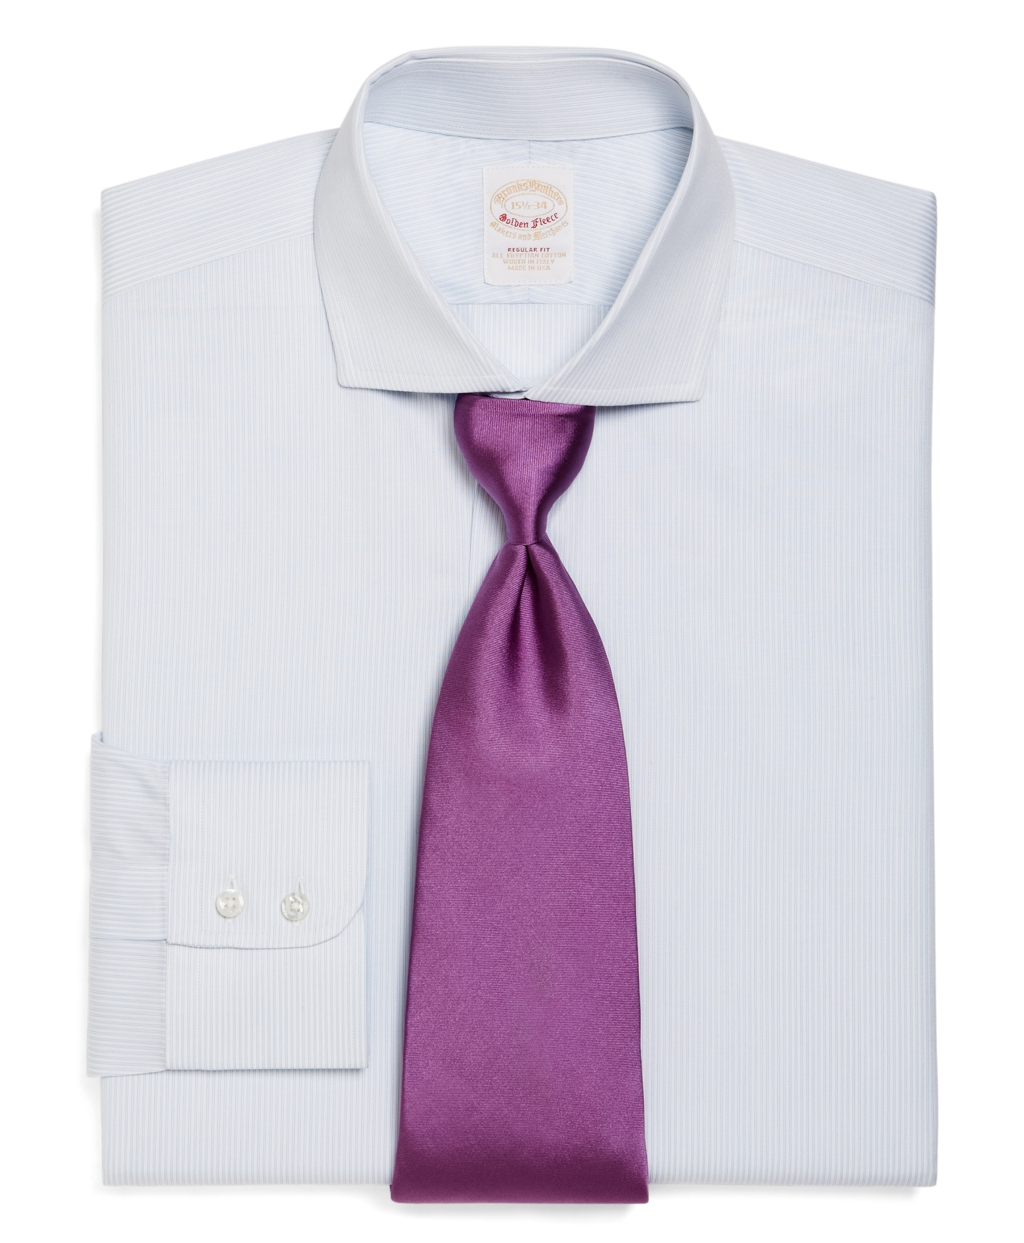 Brooks brothers golden fleece madison fit double for Brooks brothers dress shirt fit guide